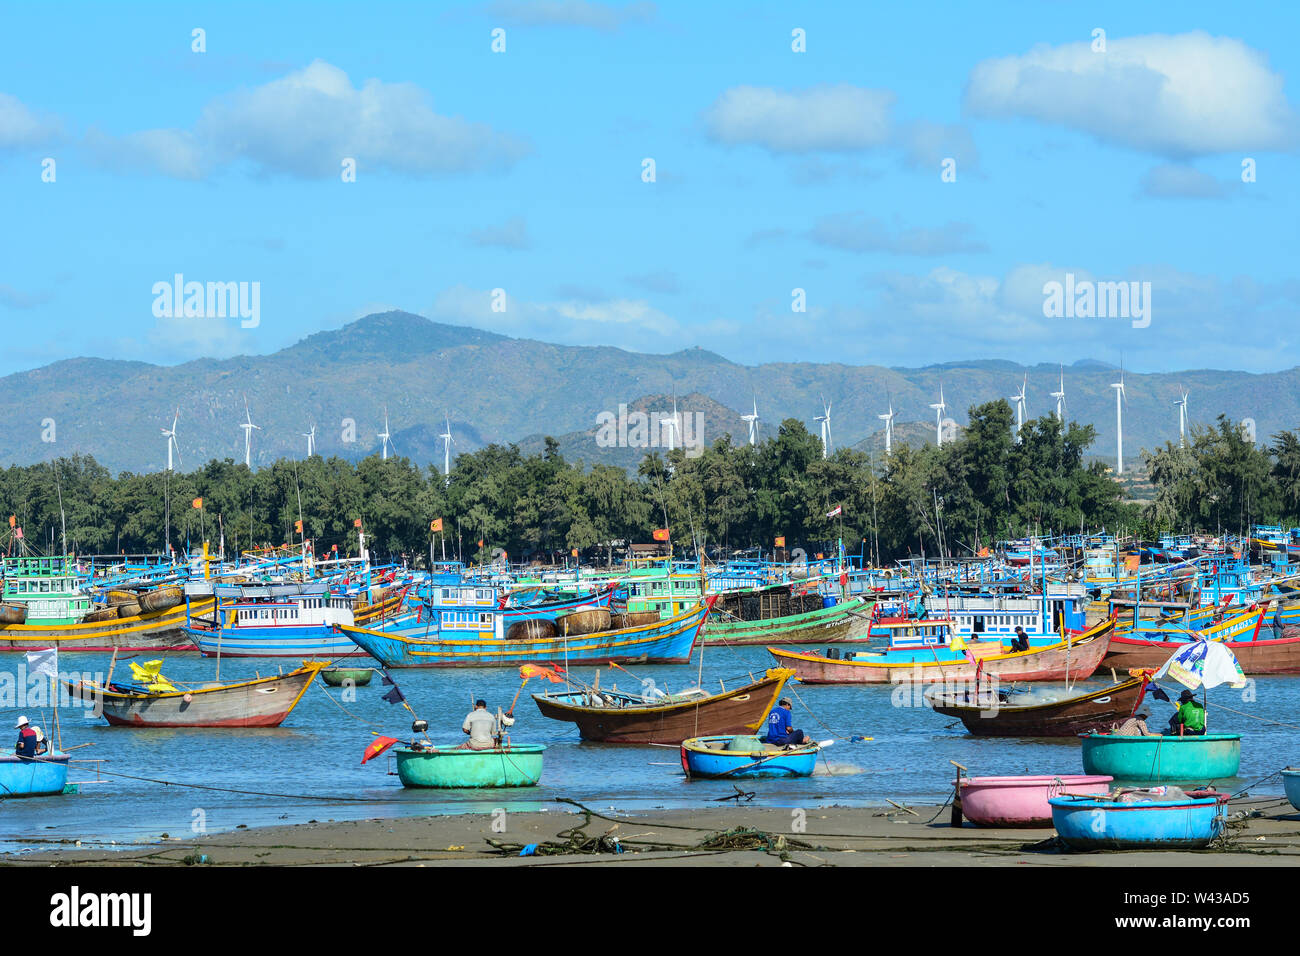 Nha Trang, Vietnam - Jan 27, 2016. Fishing boats at Ben Dam village in Nha Trang, Vietnam. Nha Trang city has a metropolitan area of 251 km2 and popul Stock Photo